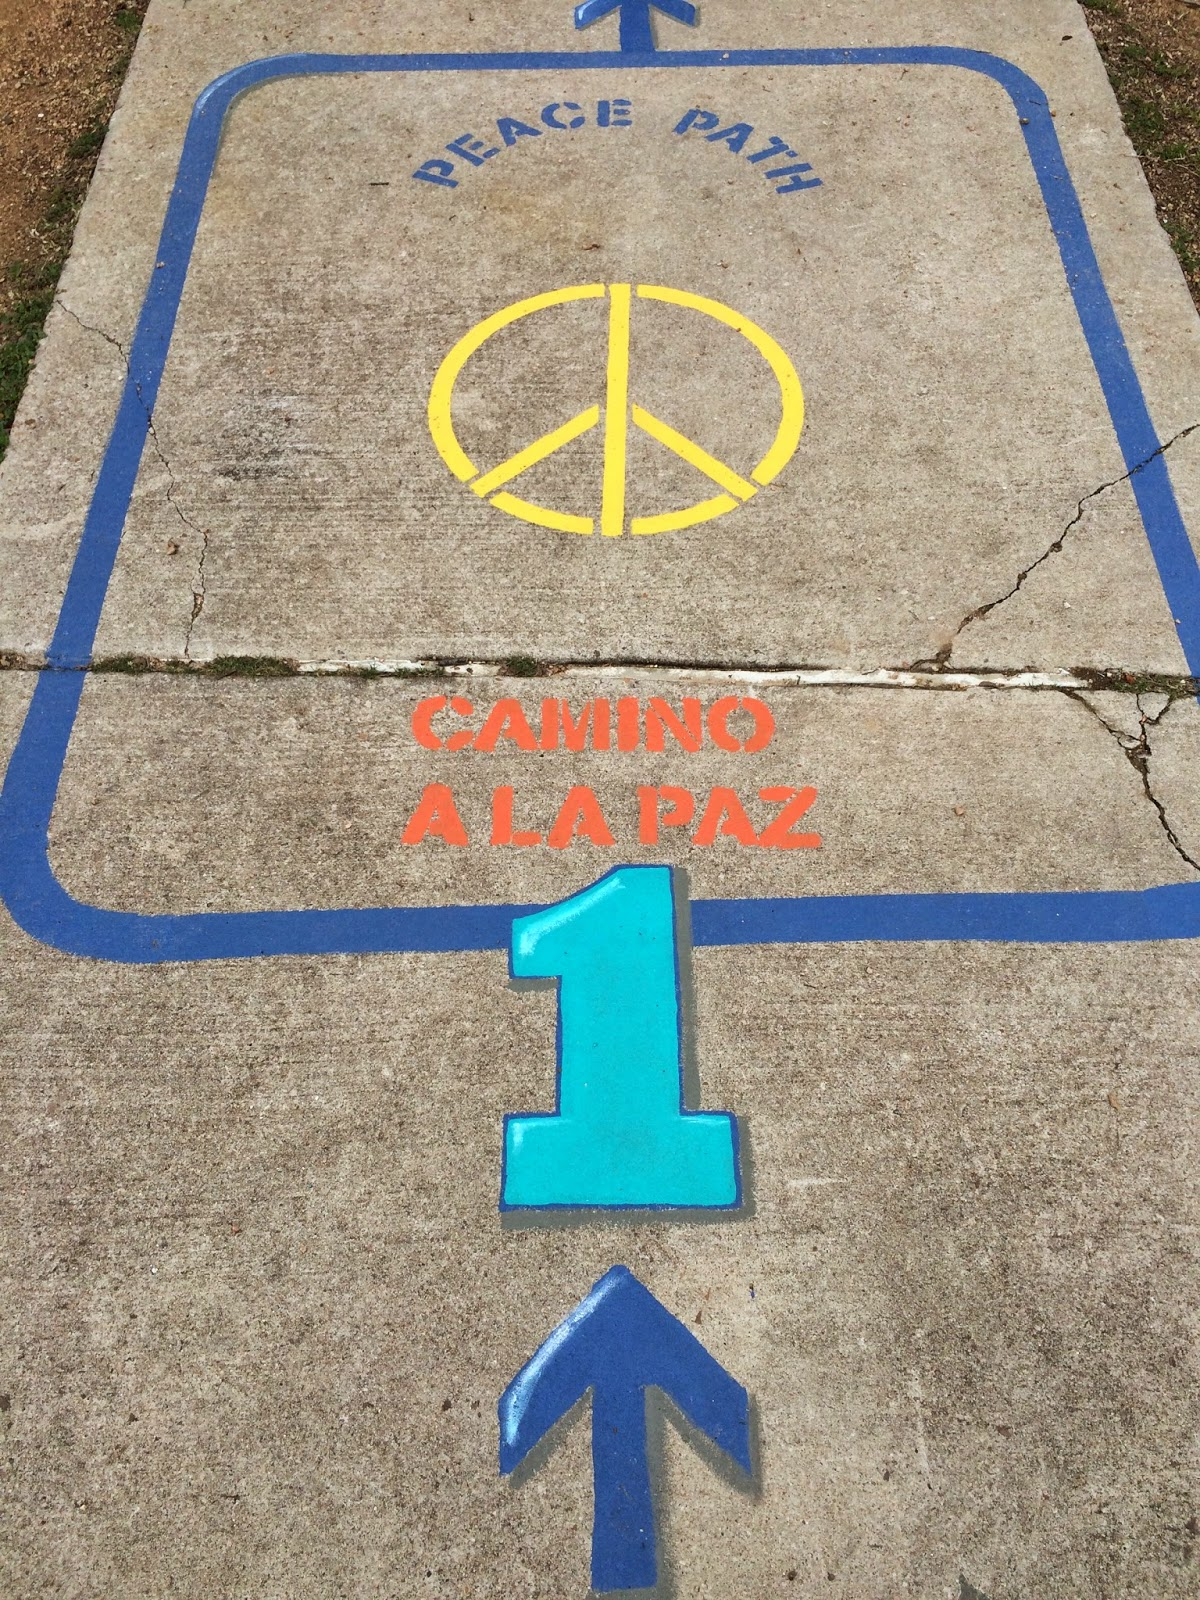 Ms Sepp S Counselor Corner Our New Peace Path